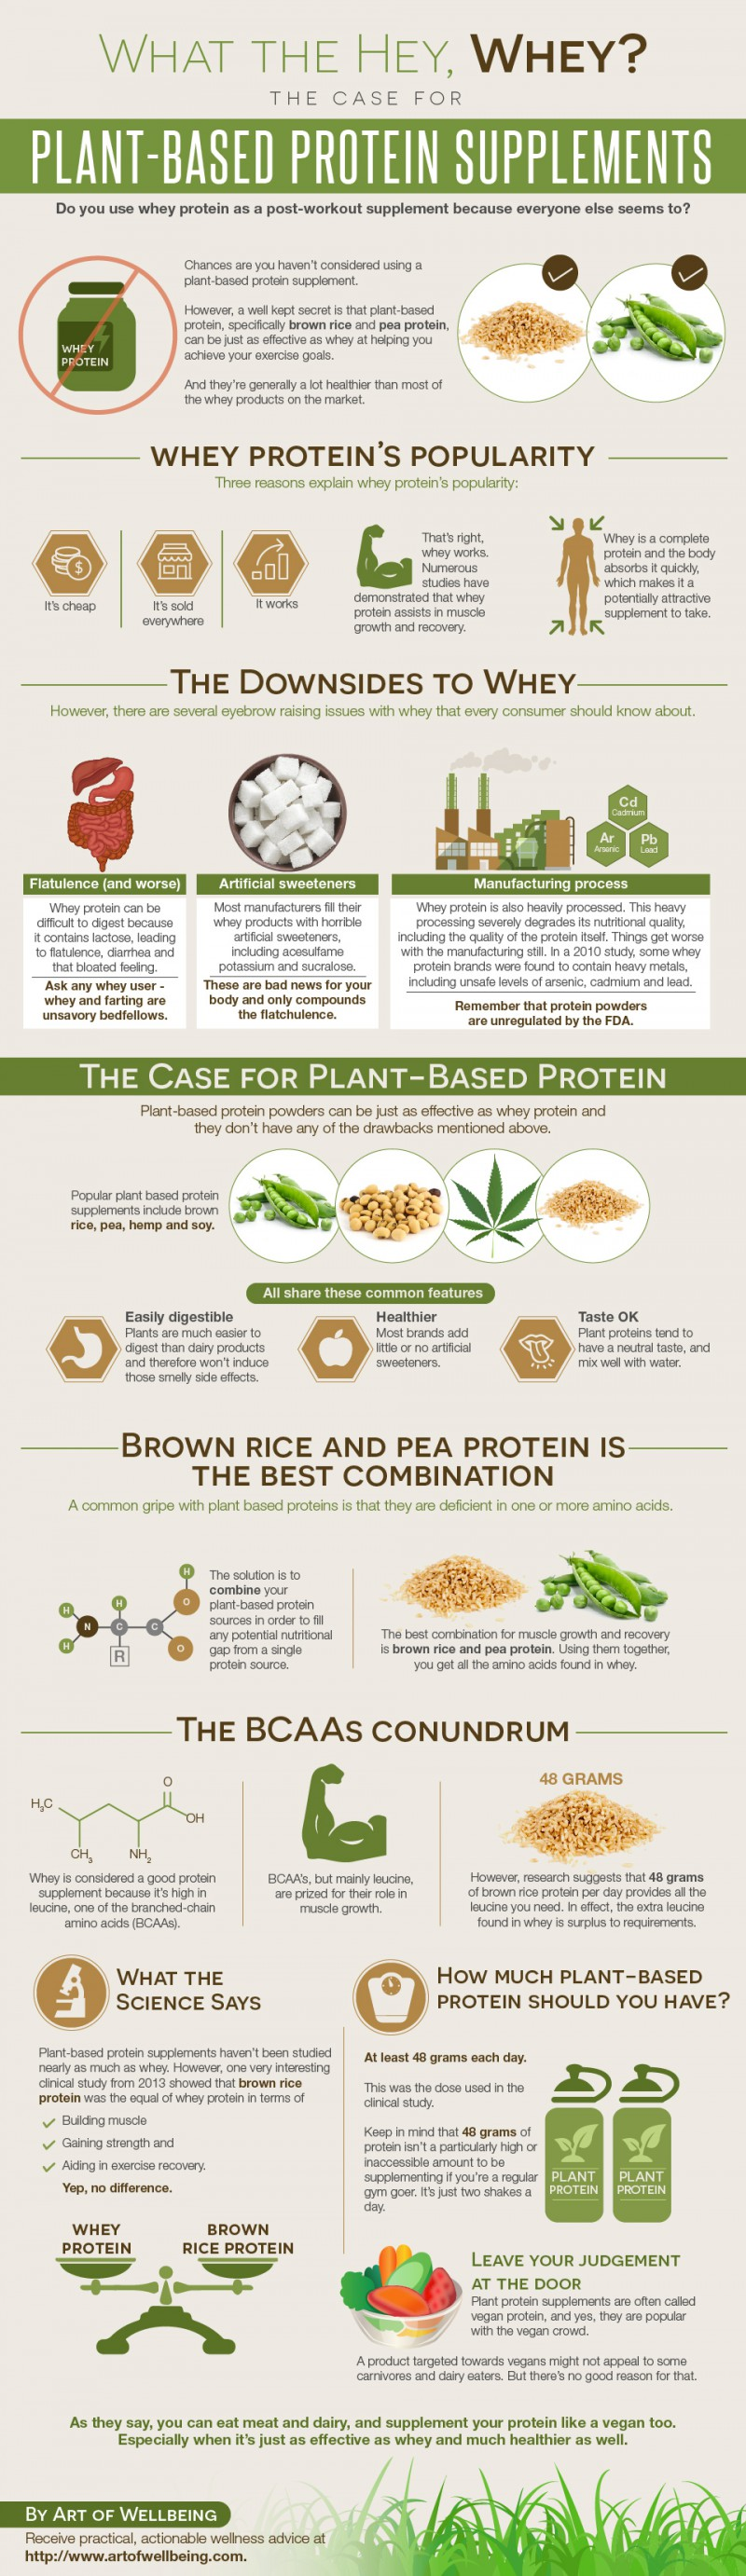 Plantbased protein infographic